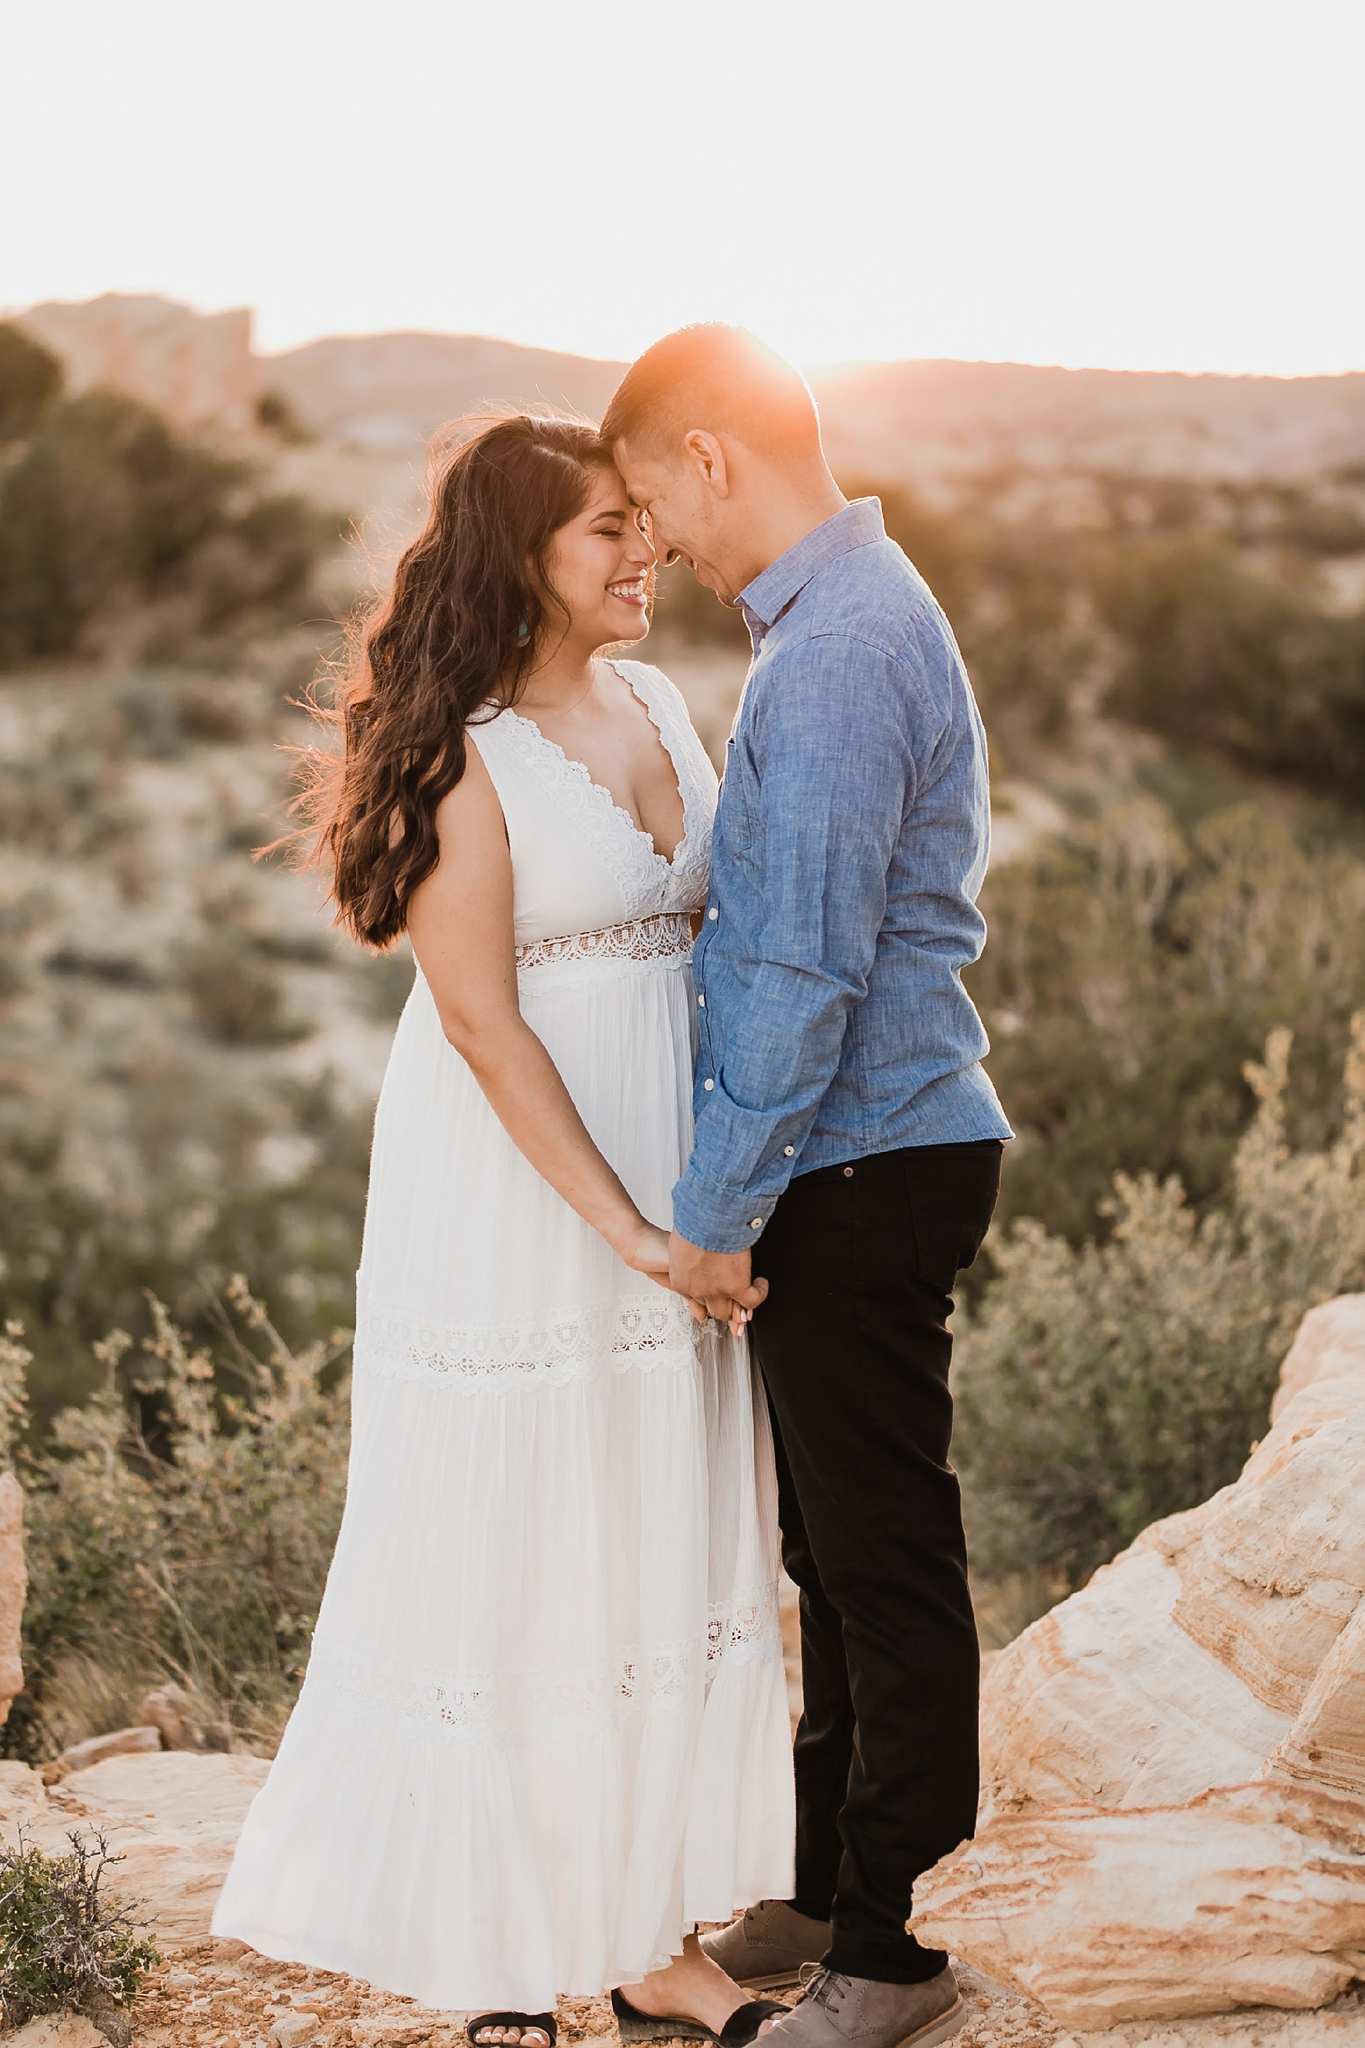 Alicia+lucia+photography+-+albuquerque+wedding+photographer+-+santa+fe+wedding+photography+-+new+mexico+wedding+photographer+-+new+mexico+wedding+-+new+mexico+engagement+-+white+mesa+engagement+-+desert+engagement_0012.jpg